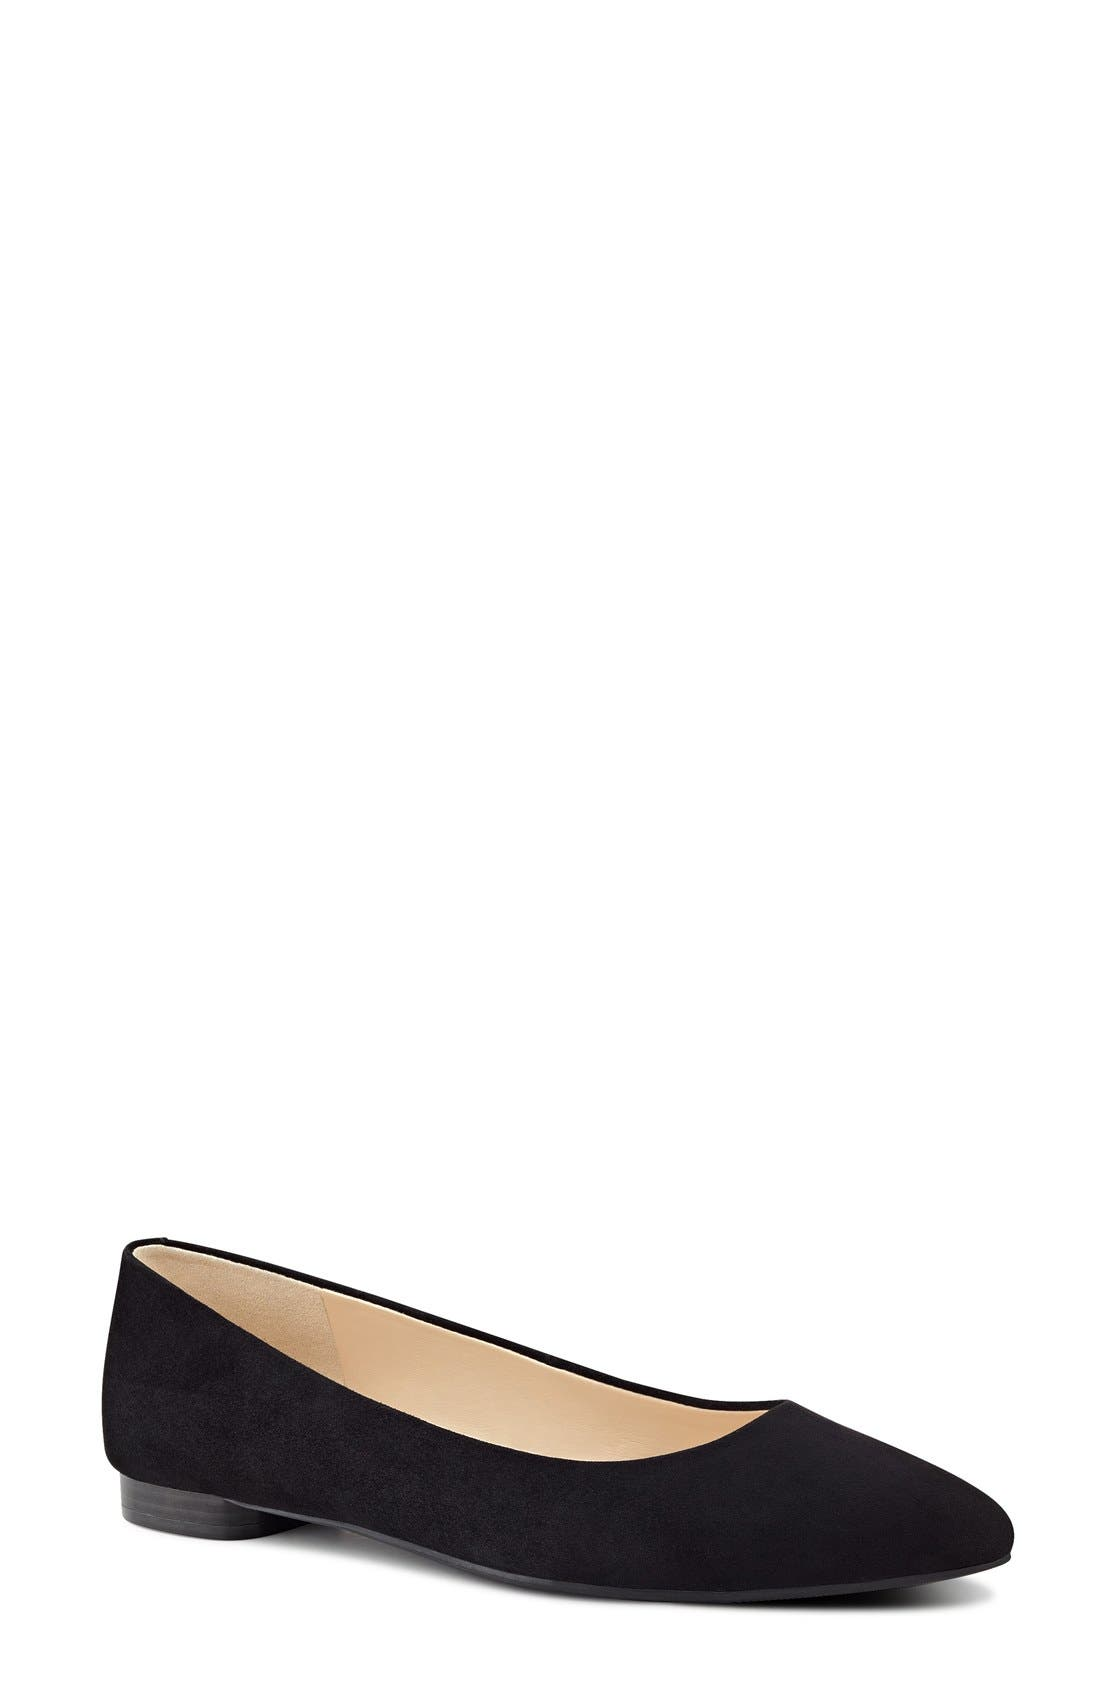 Main Image - Nine West 'Onlee' Pointy Toe Flat (Women)